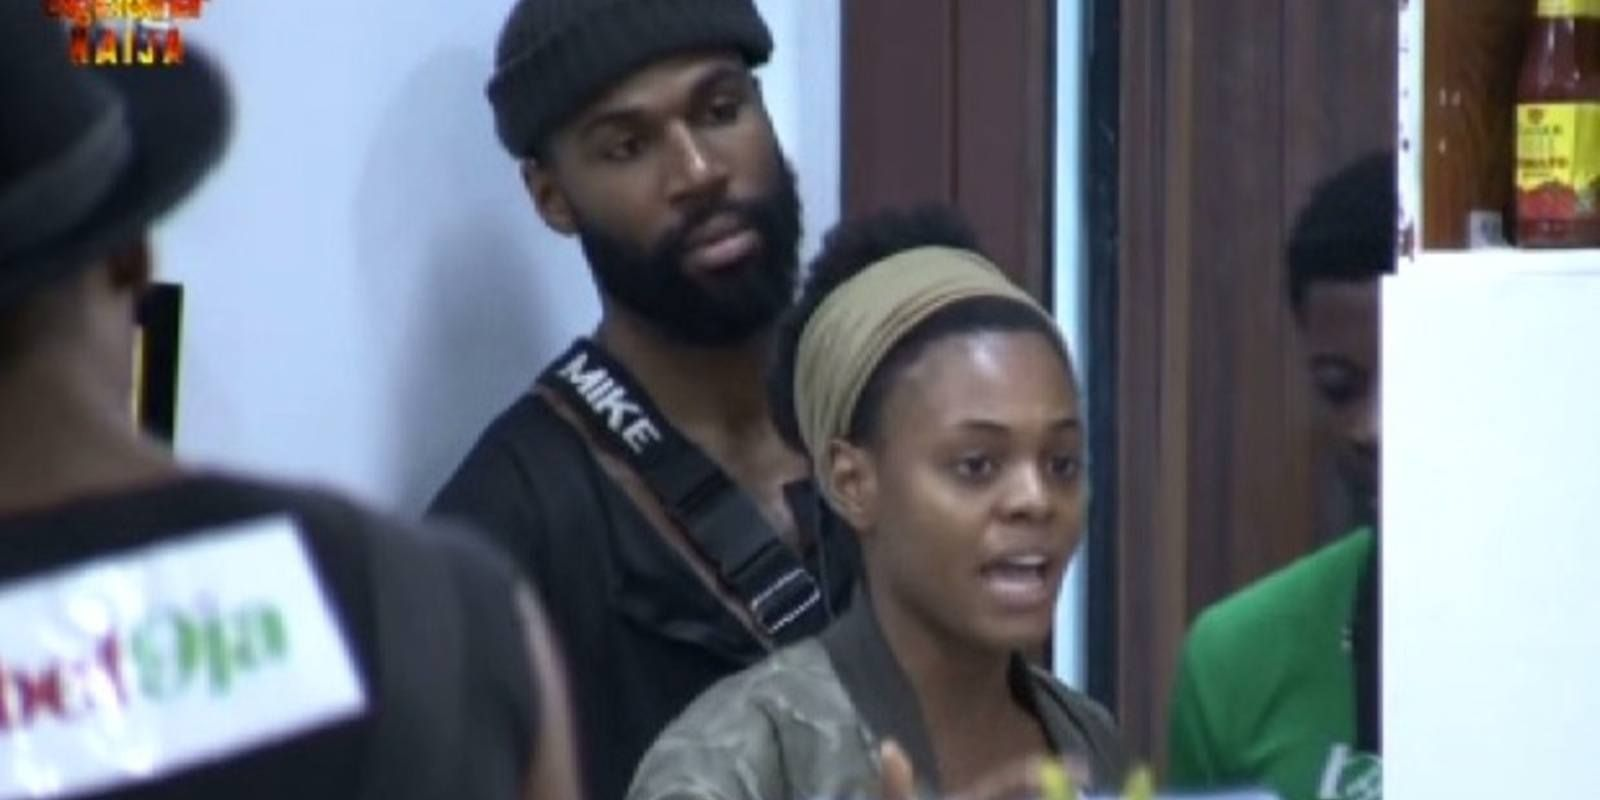 Fights over Biggie's Gifts, Truths & Dares, Dano Milk Challenges & Party with DJ Humility! Highlights from #BBNaija Day 48